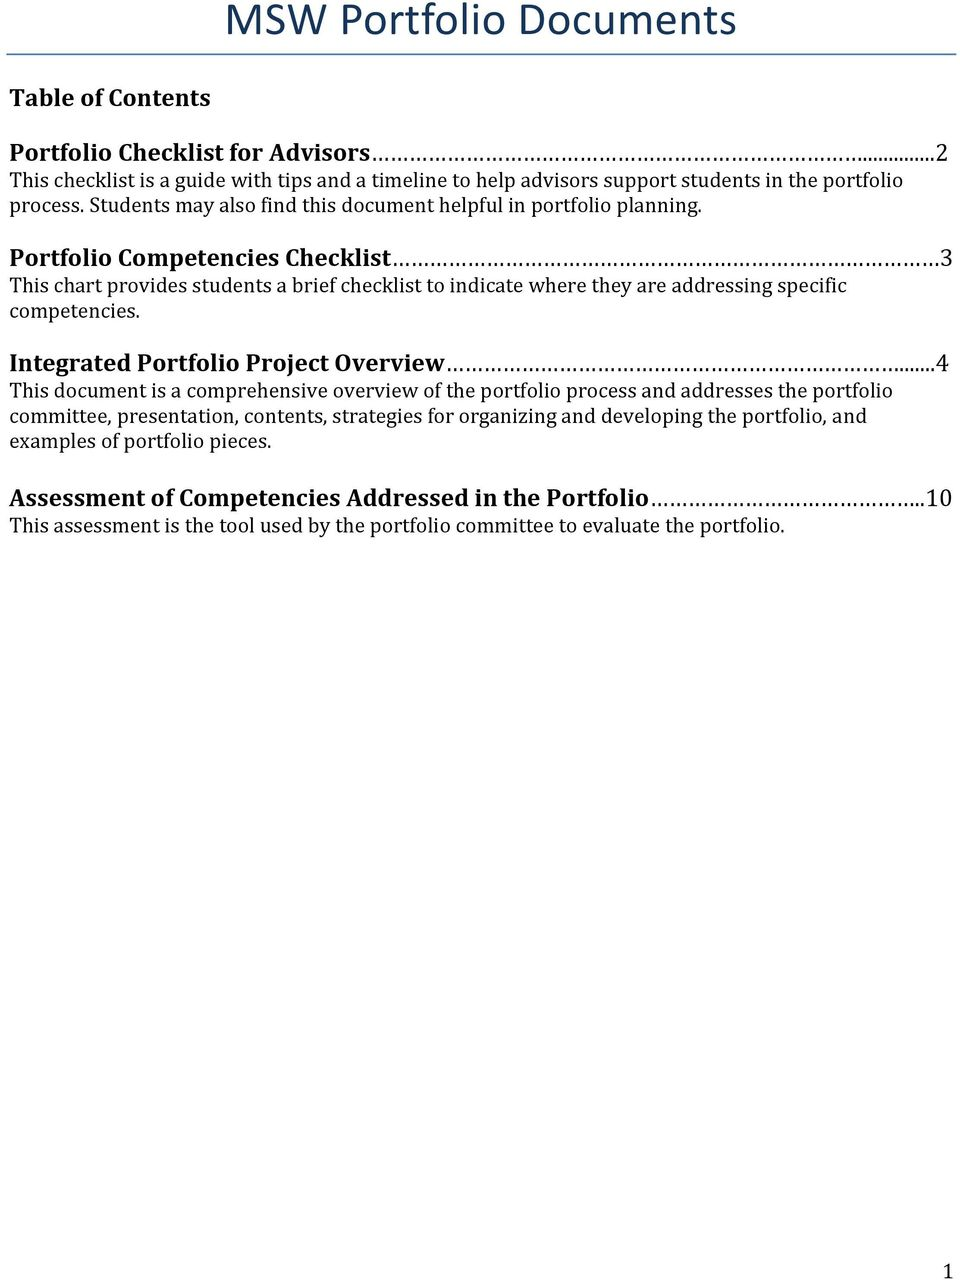 Portfolio Competencies Checklist 3 This chart provides students a brief checklist to indicate where they are addressing specific competencies. Integrated Portfolio Project Overview.